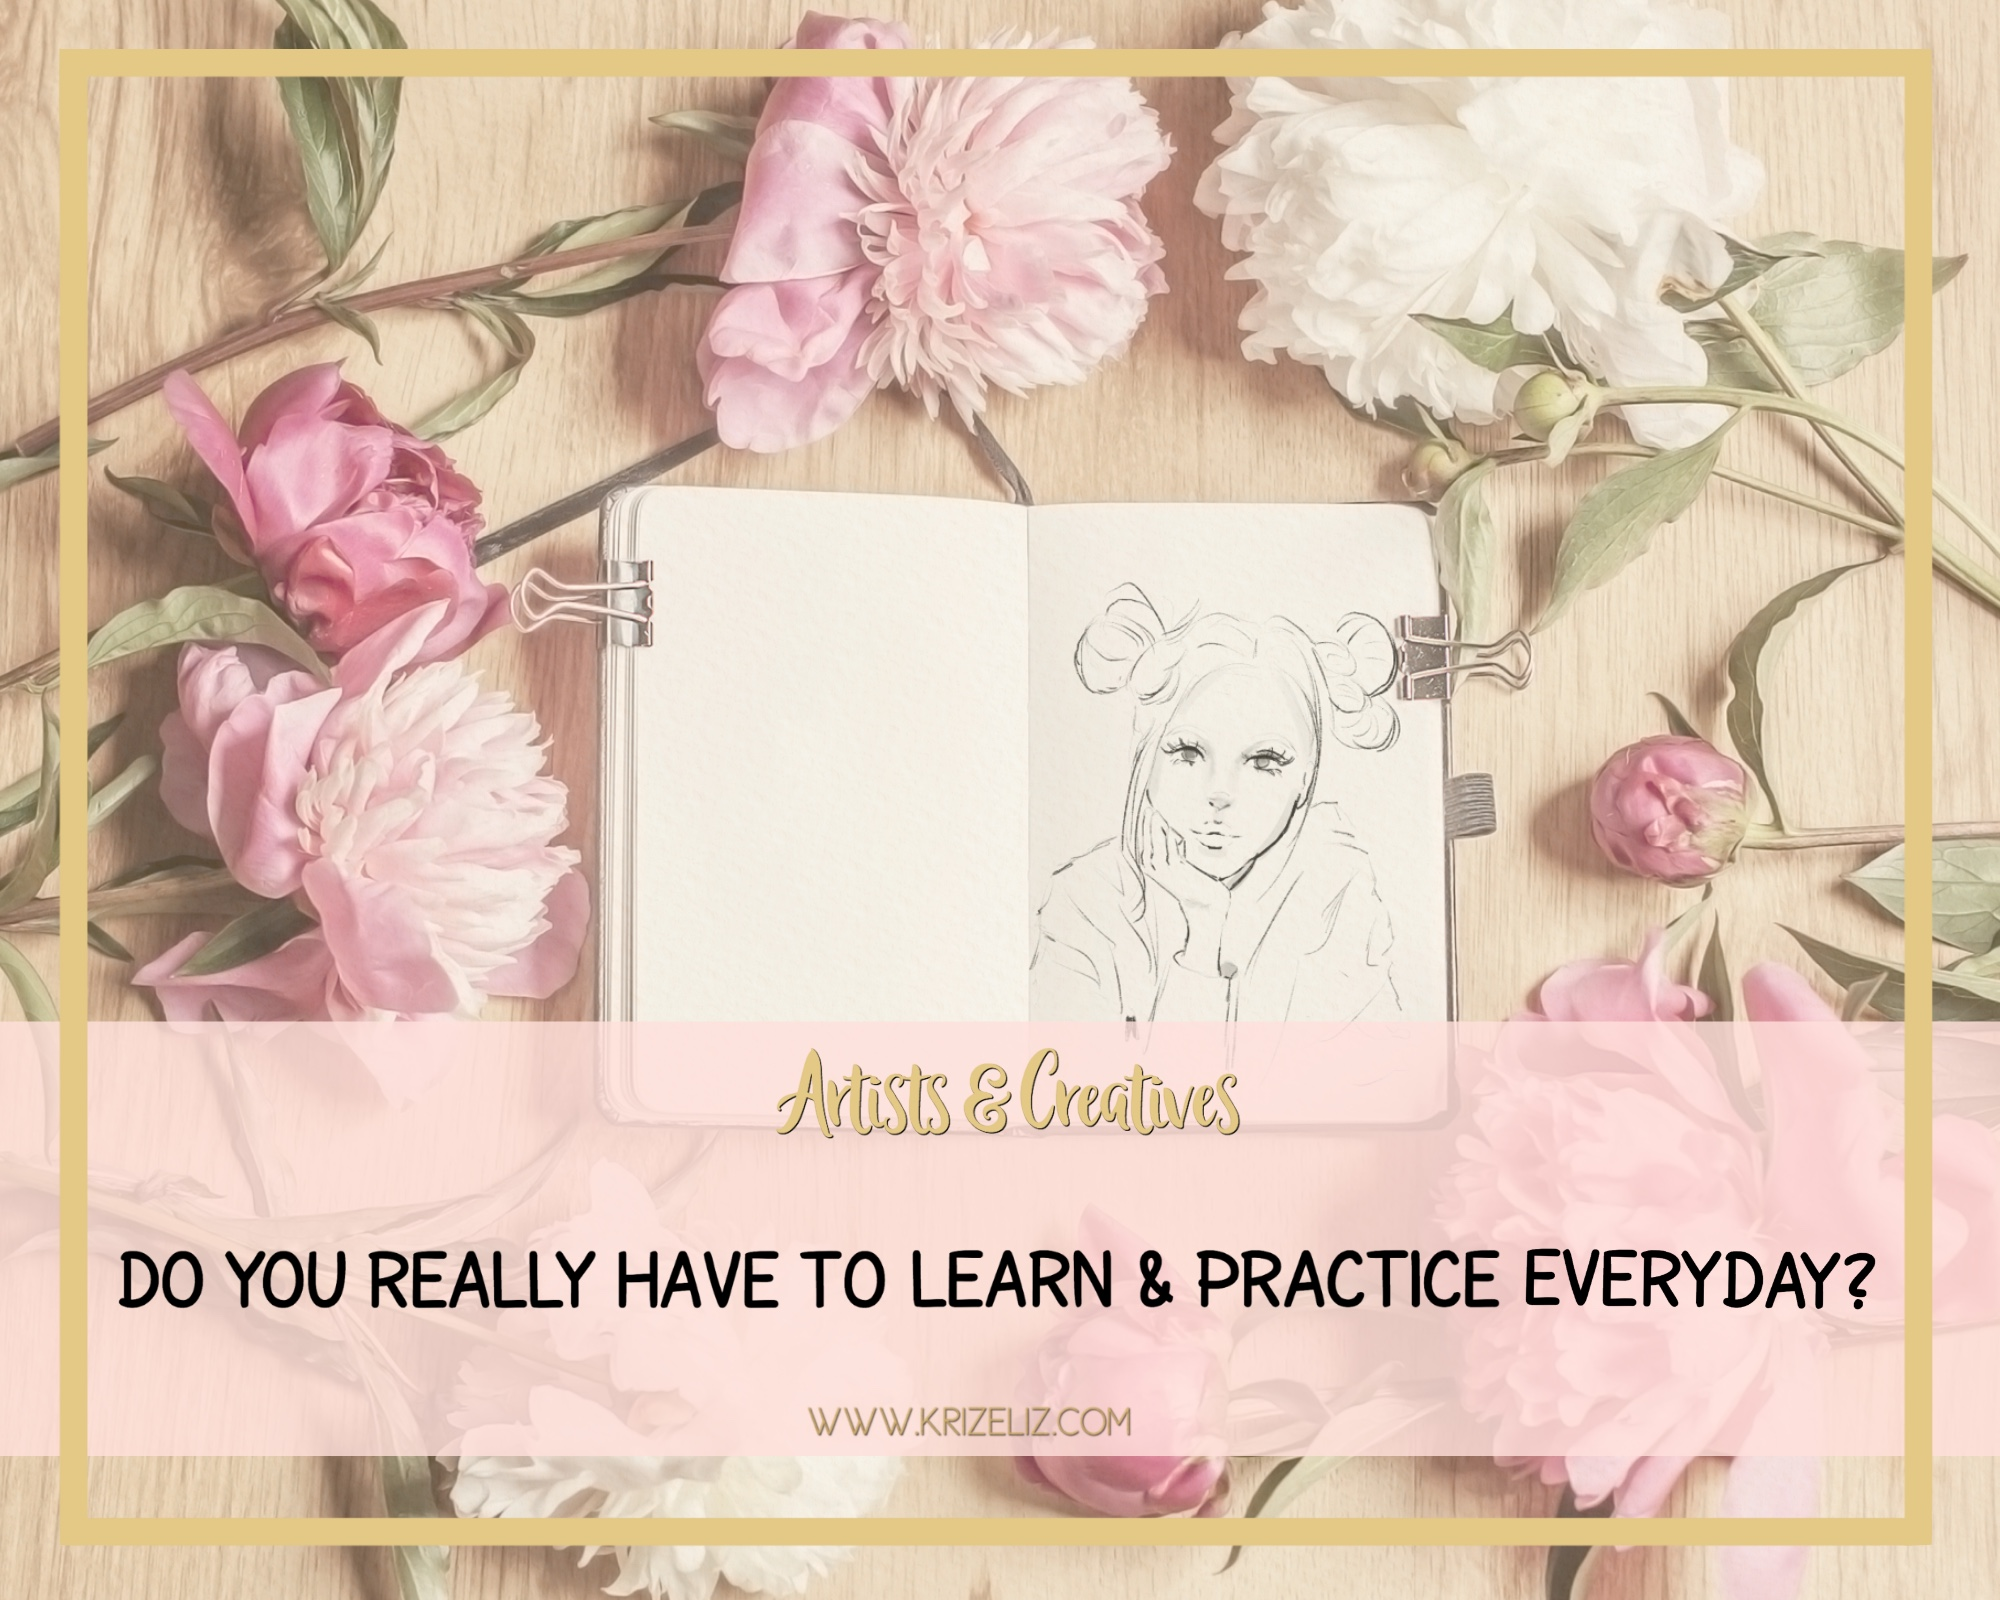 Creatives: Do you really have to practice everyday?